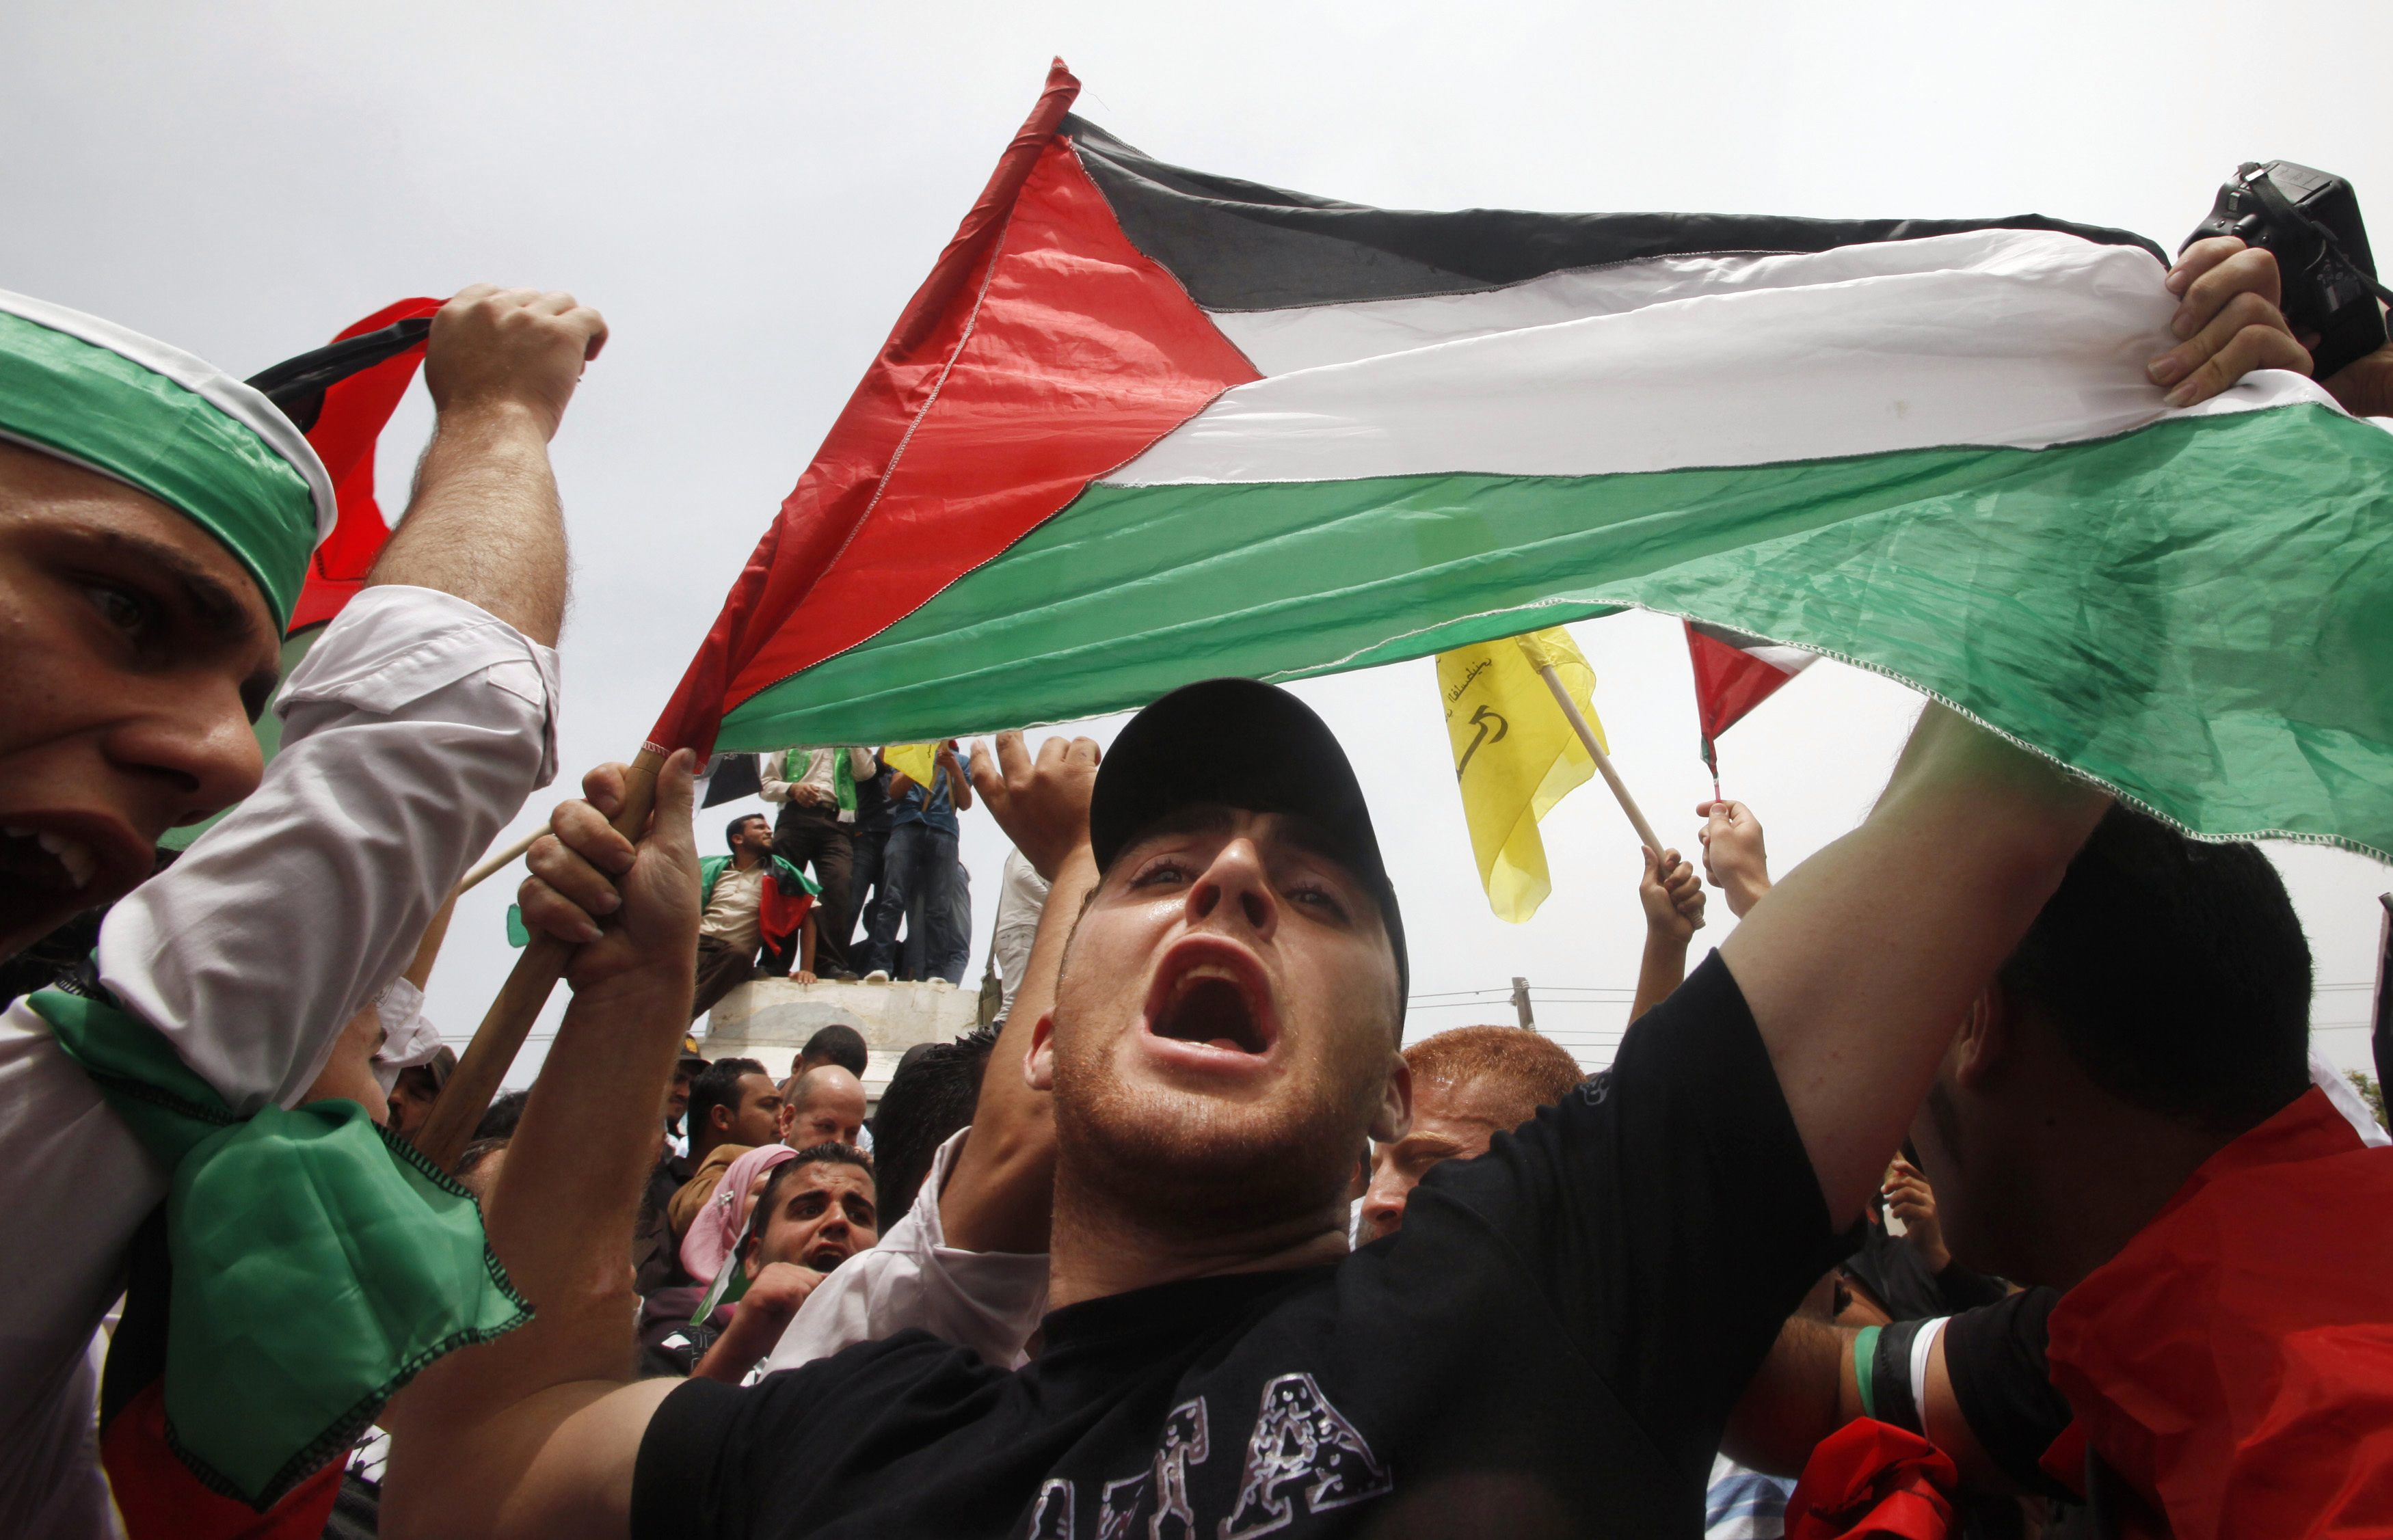 Palestinian holds up flag as he celebrates reconciliation agreement between rival Palestinian factions Fatah and Hamas during rally in Gaza City